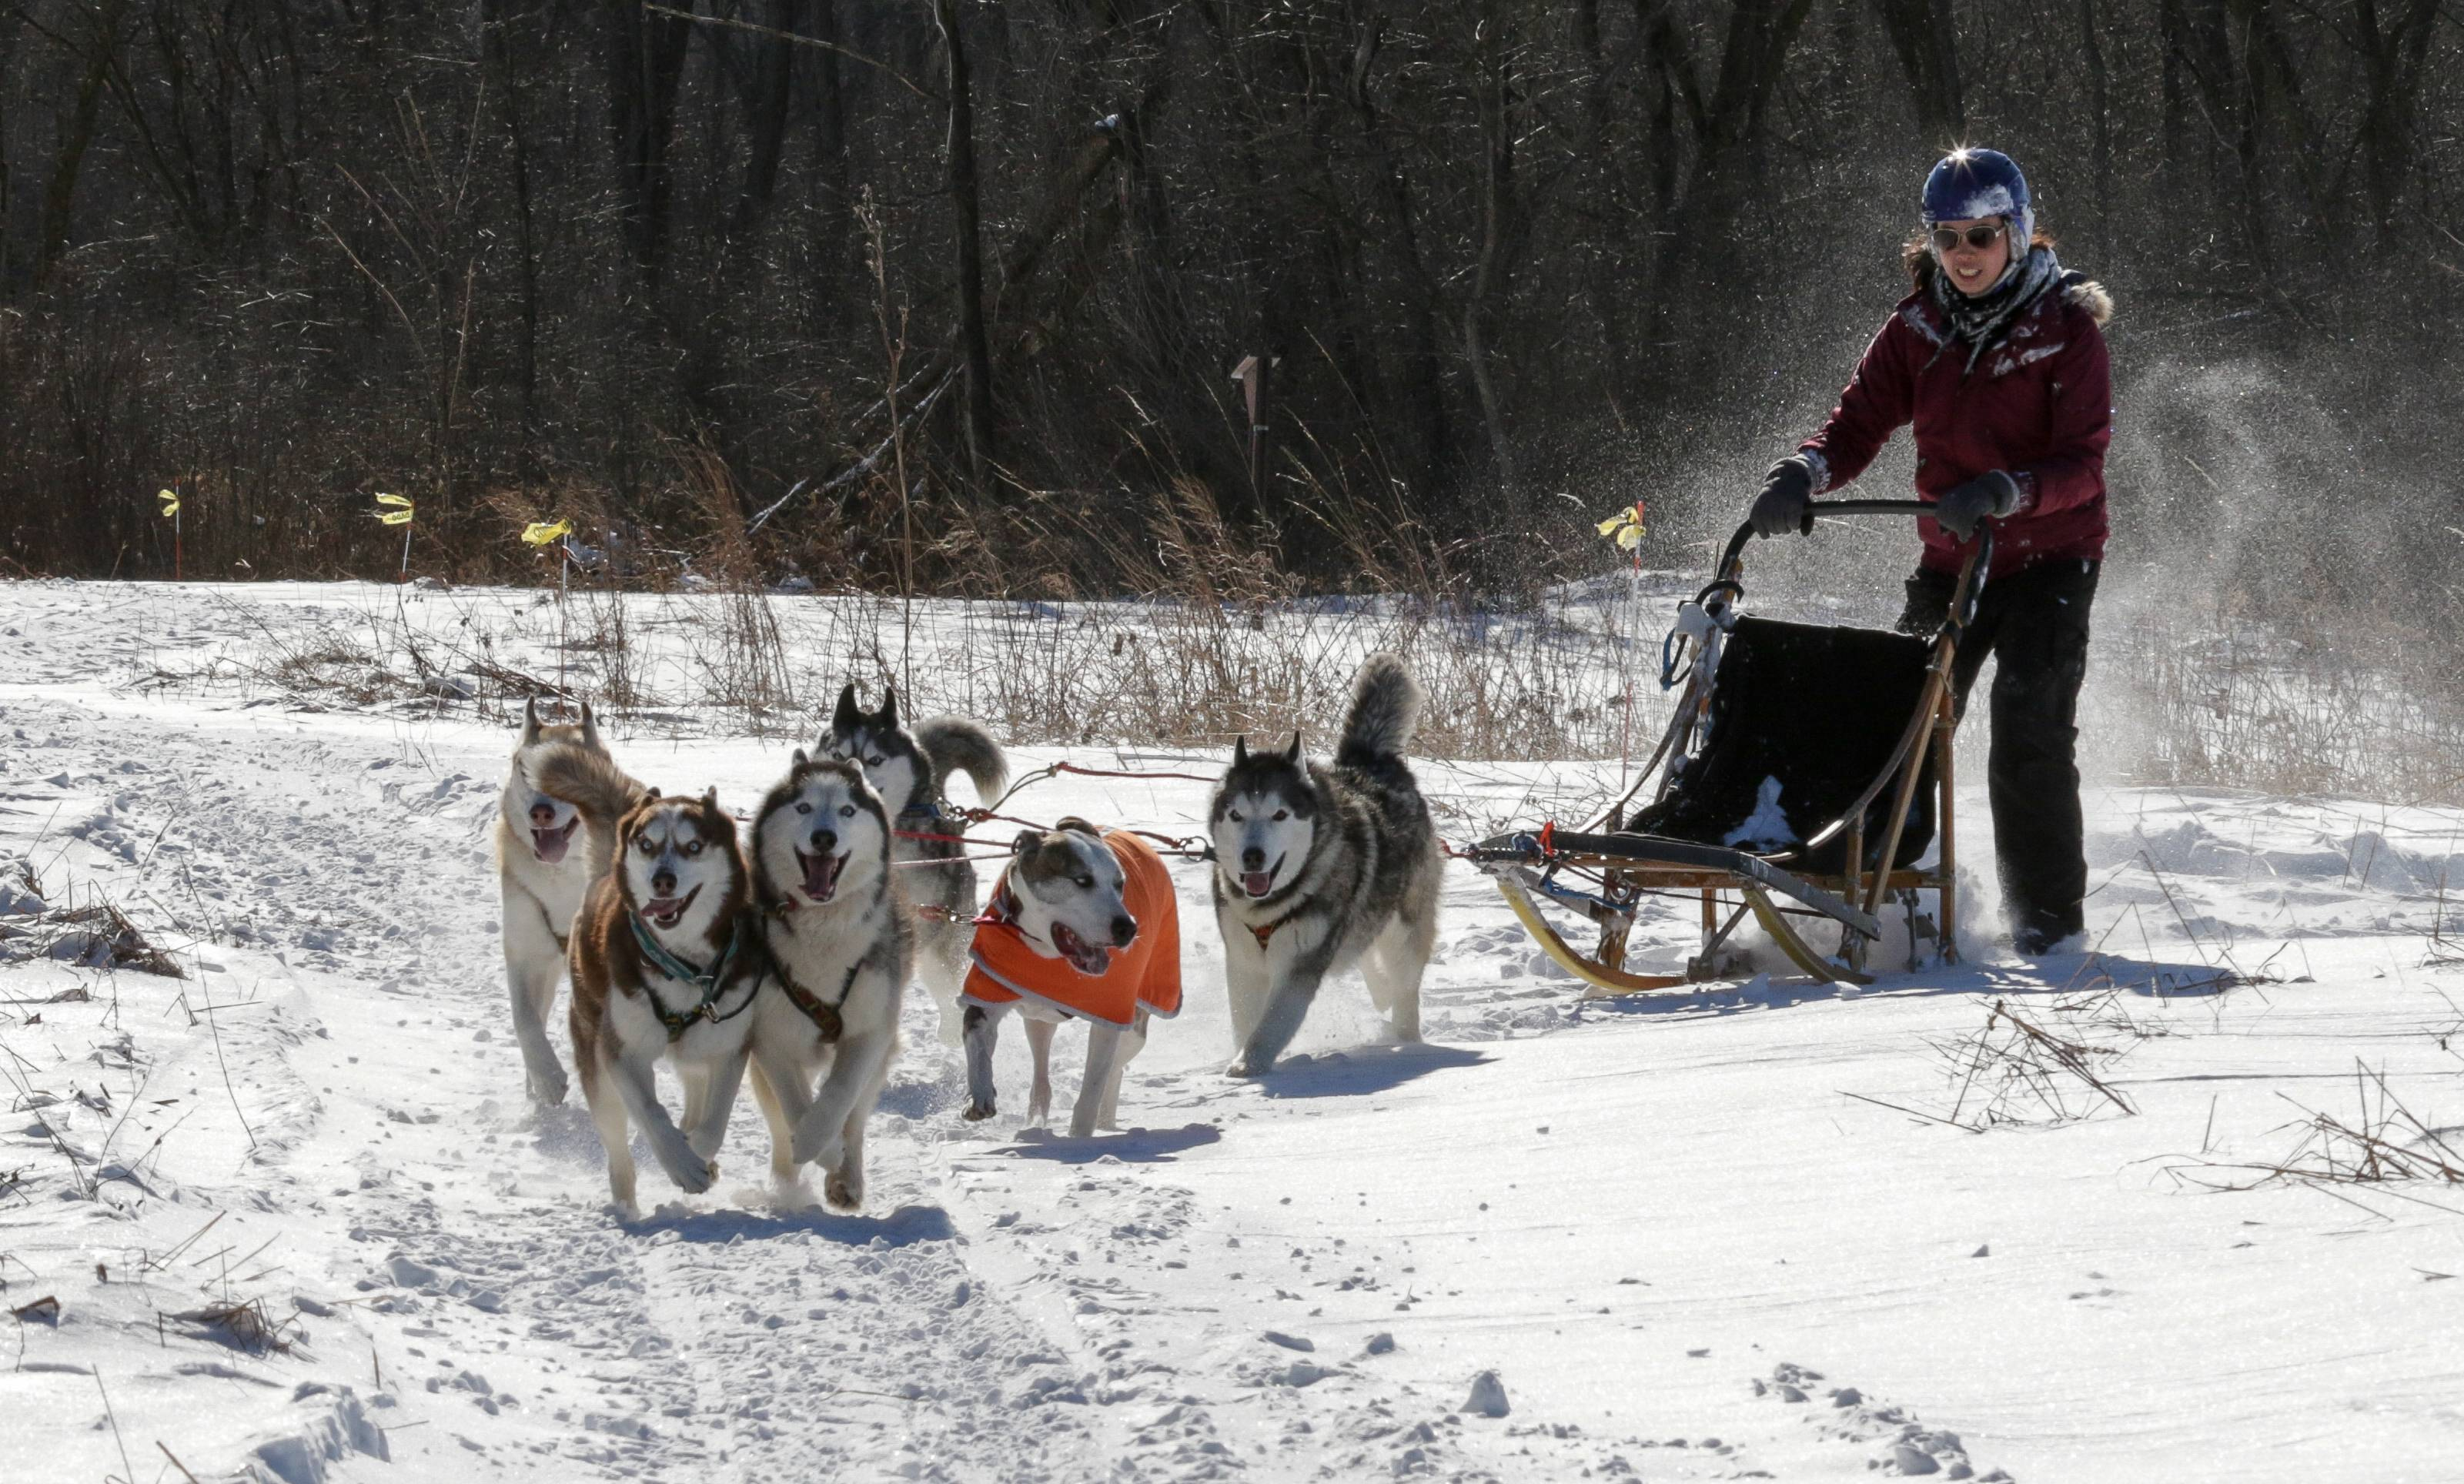 Ashley McGrane of the Windy City Mushers takes sled dogs for a run Sunday during the Spring Valley Winter Fest in Schaumburg.